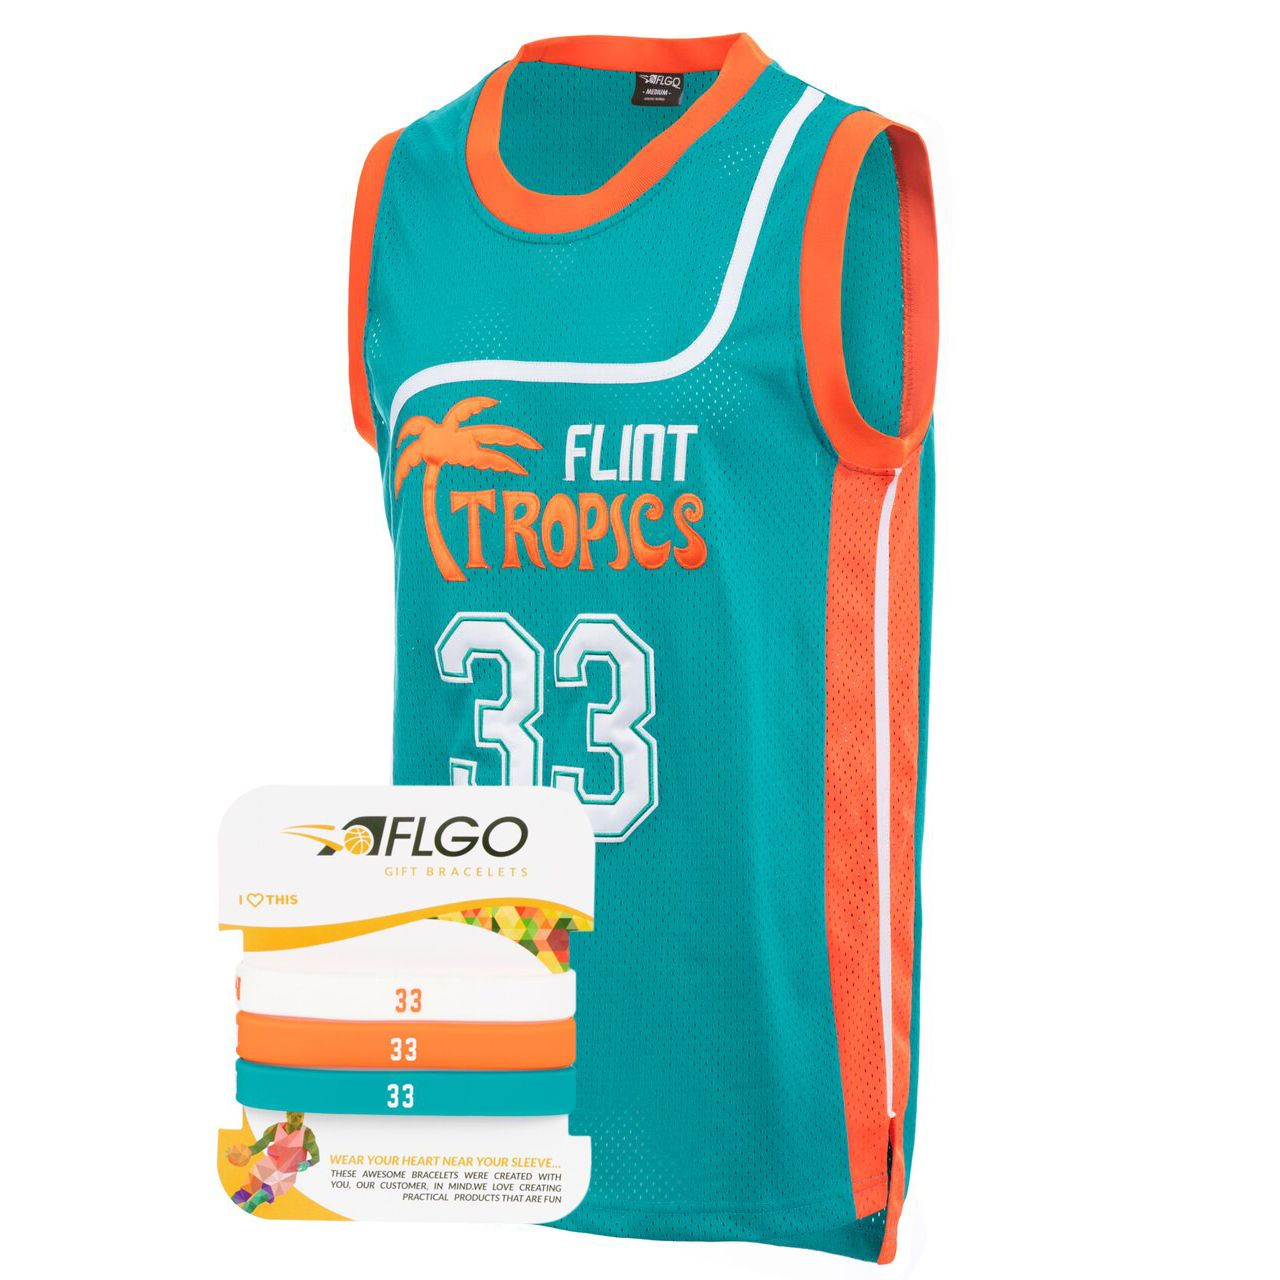 c50e9e63f59f Jackie Moon jersey is from the Movie Semi-Pro. Will Ferrell acted as Jackie  Moon. Jackie Moon is a basketball player of Flint Tropics. His jersey  number is